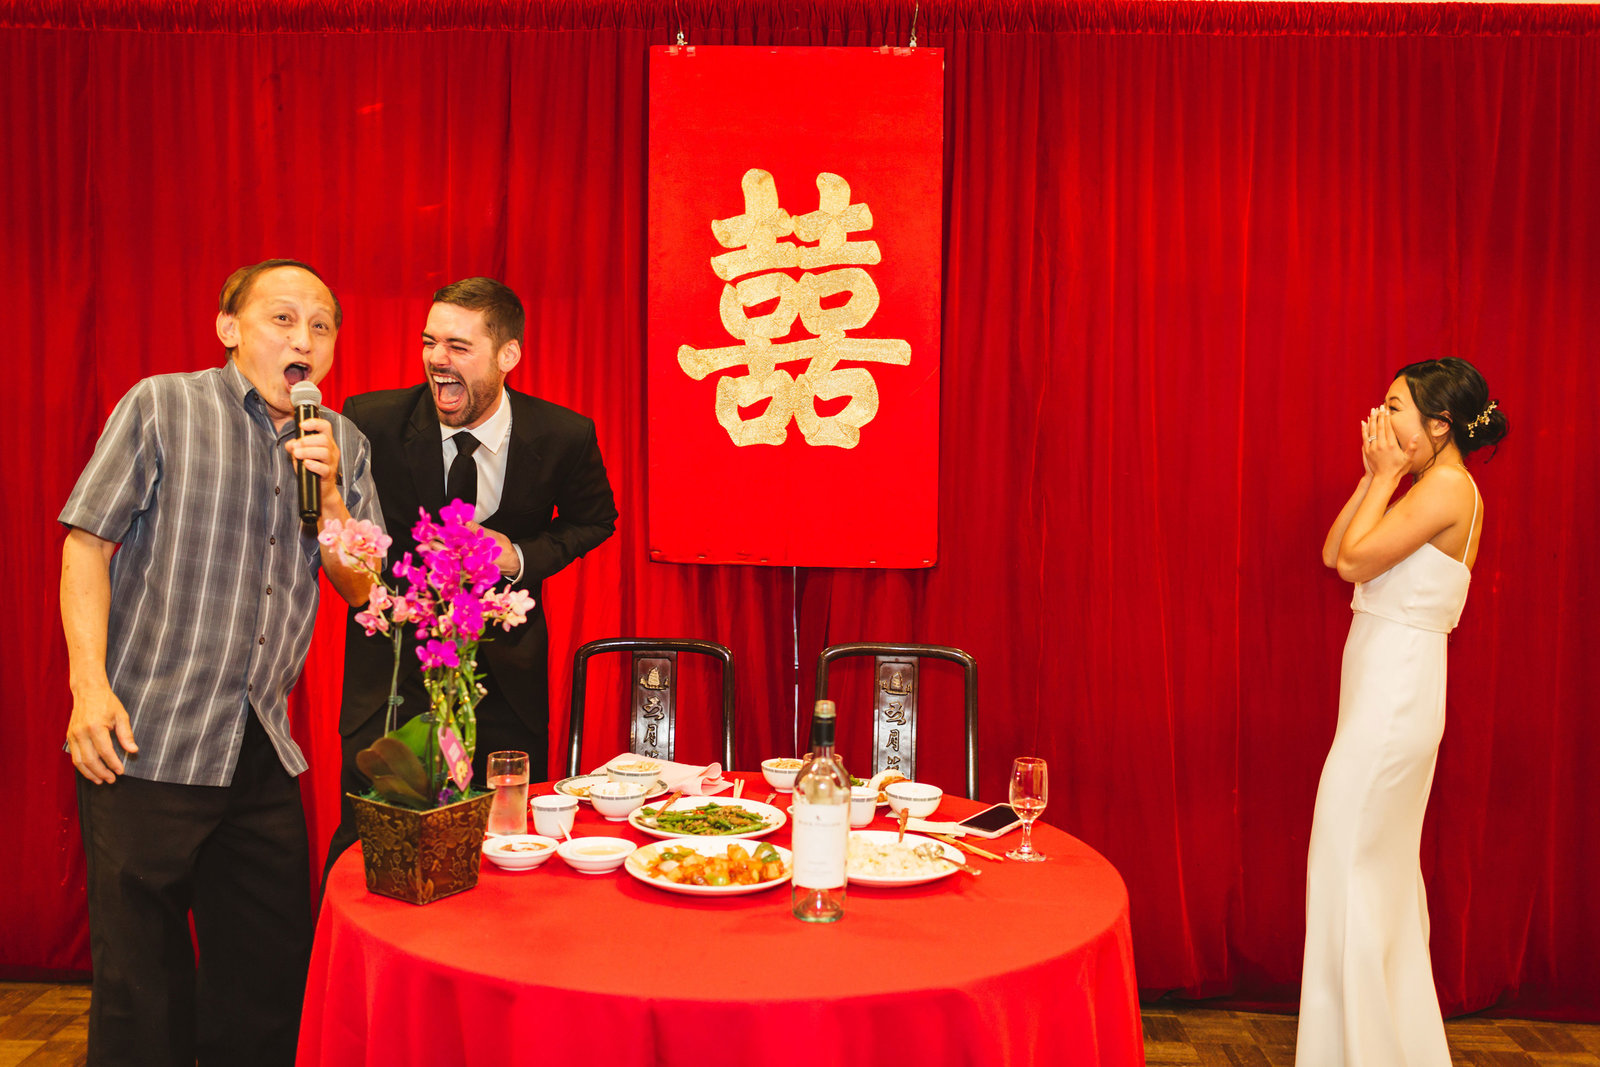 candid moment at chinese banquet wedding while uncle takes the mic